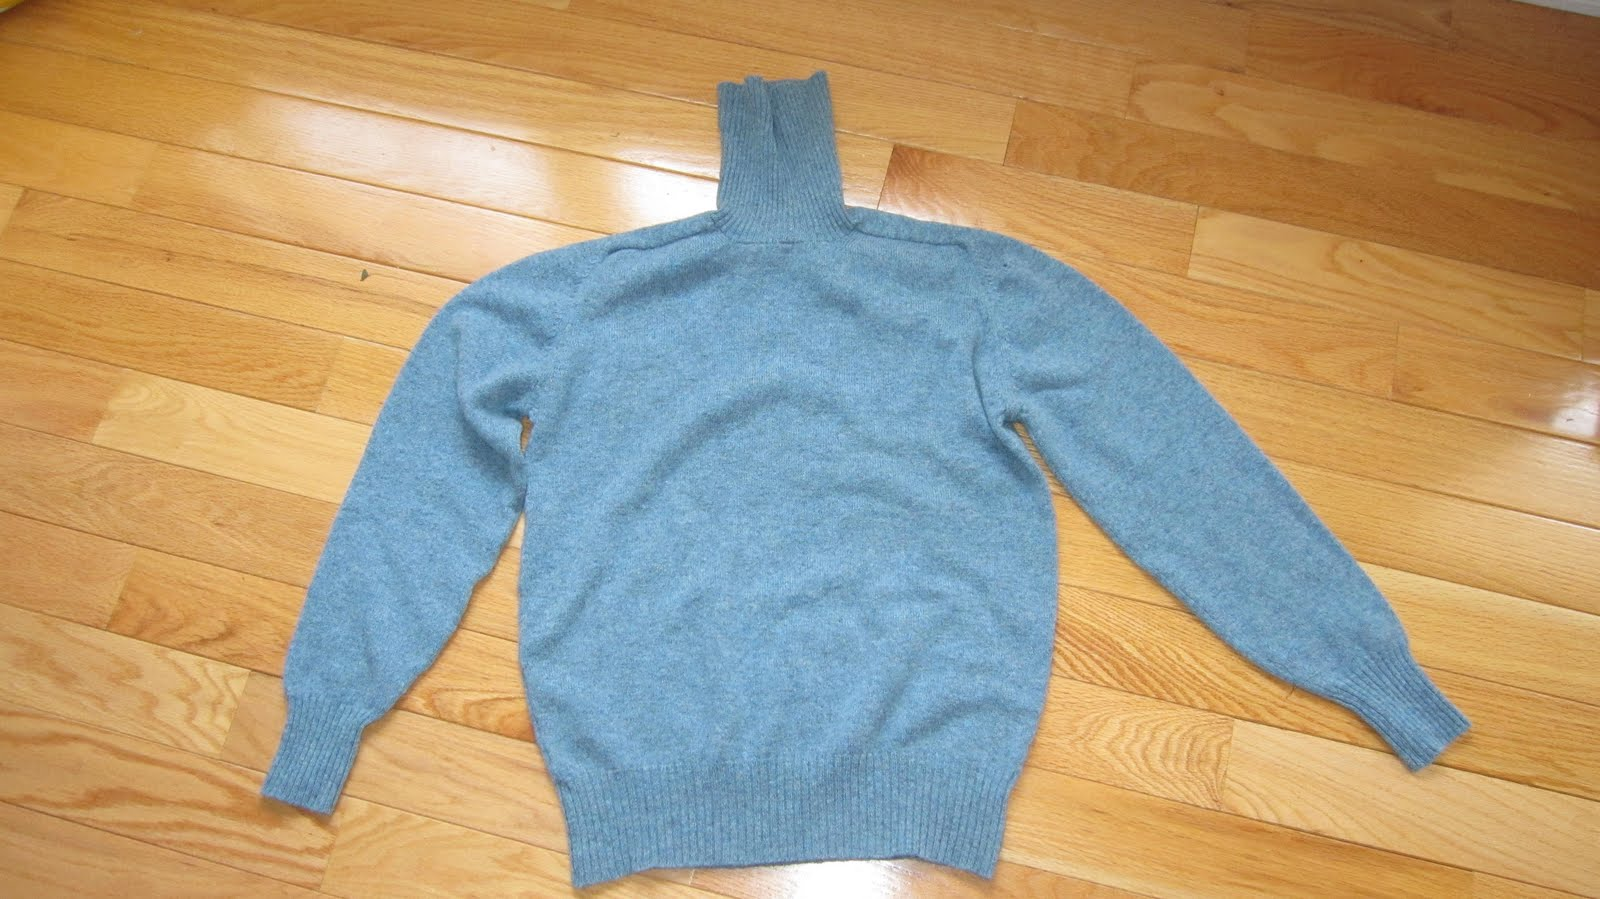 sweater project A handmade alpaca wool sweater from the andes mountains softer than   2,450 backers pledged $347,378 to help bring this project to life.